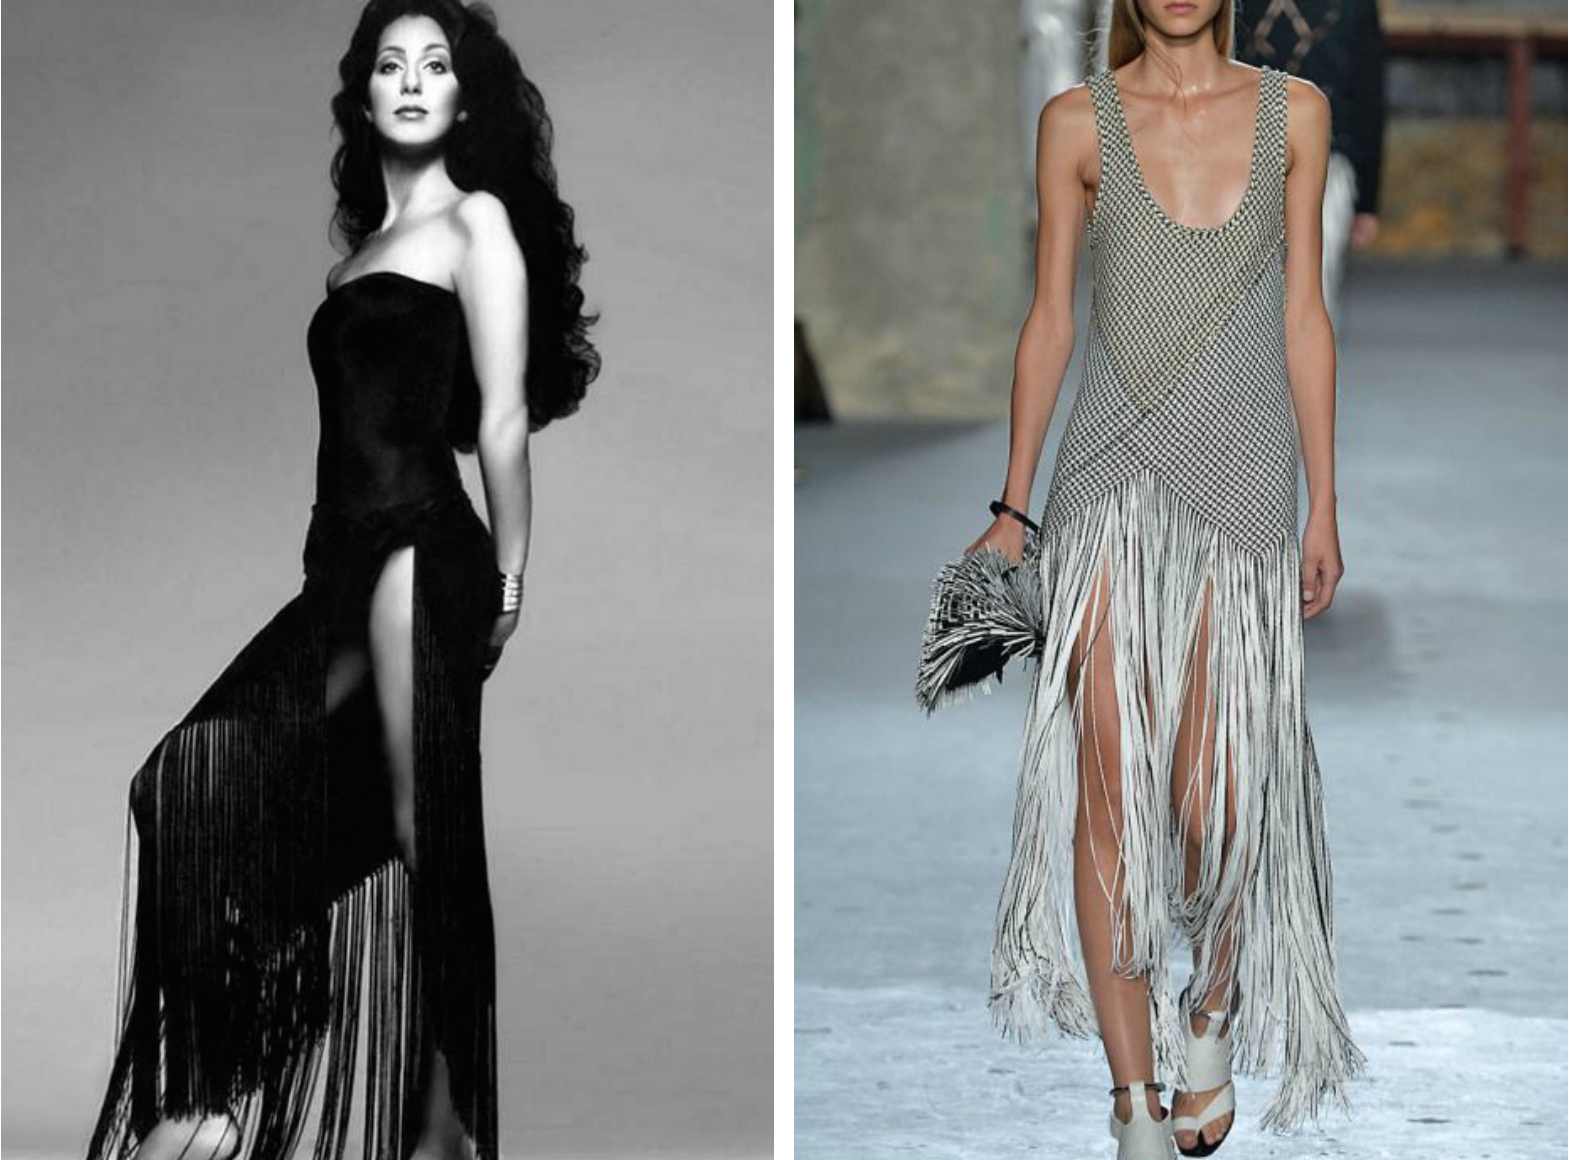 From left to right: Cher in 1972 wearing a black dress with a fringed skirt, and the Proenza Schouler Spring-Summer 2015 trunkshow.